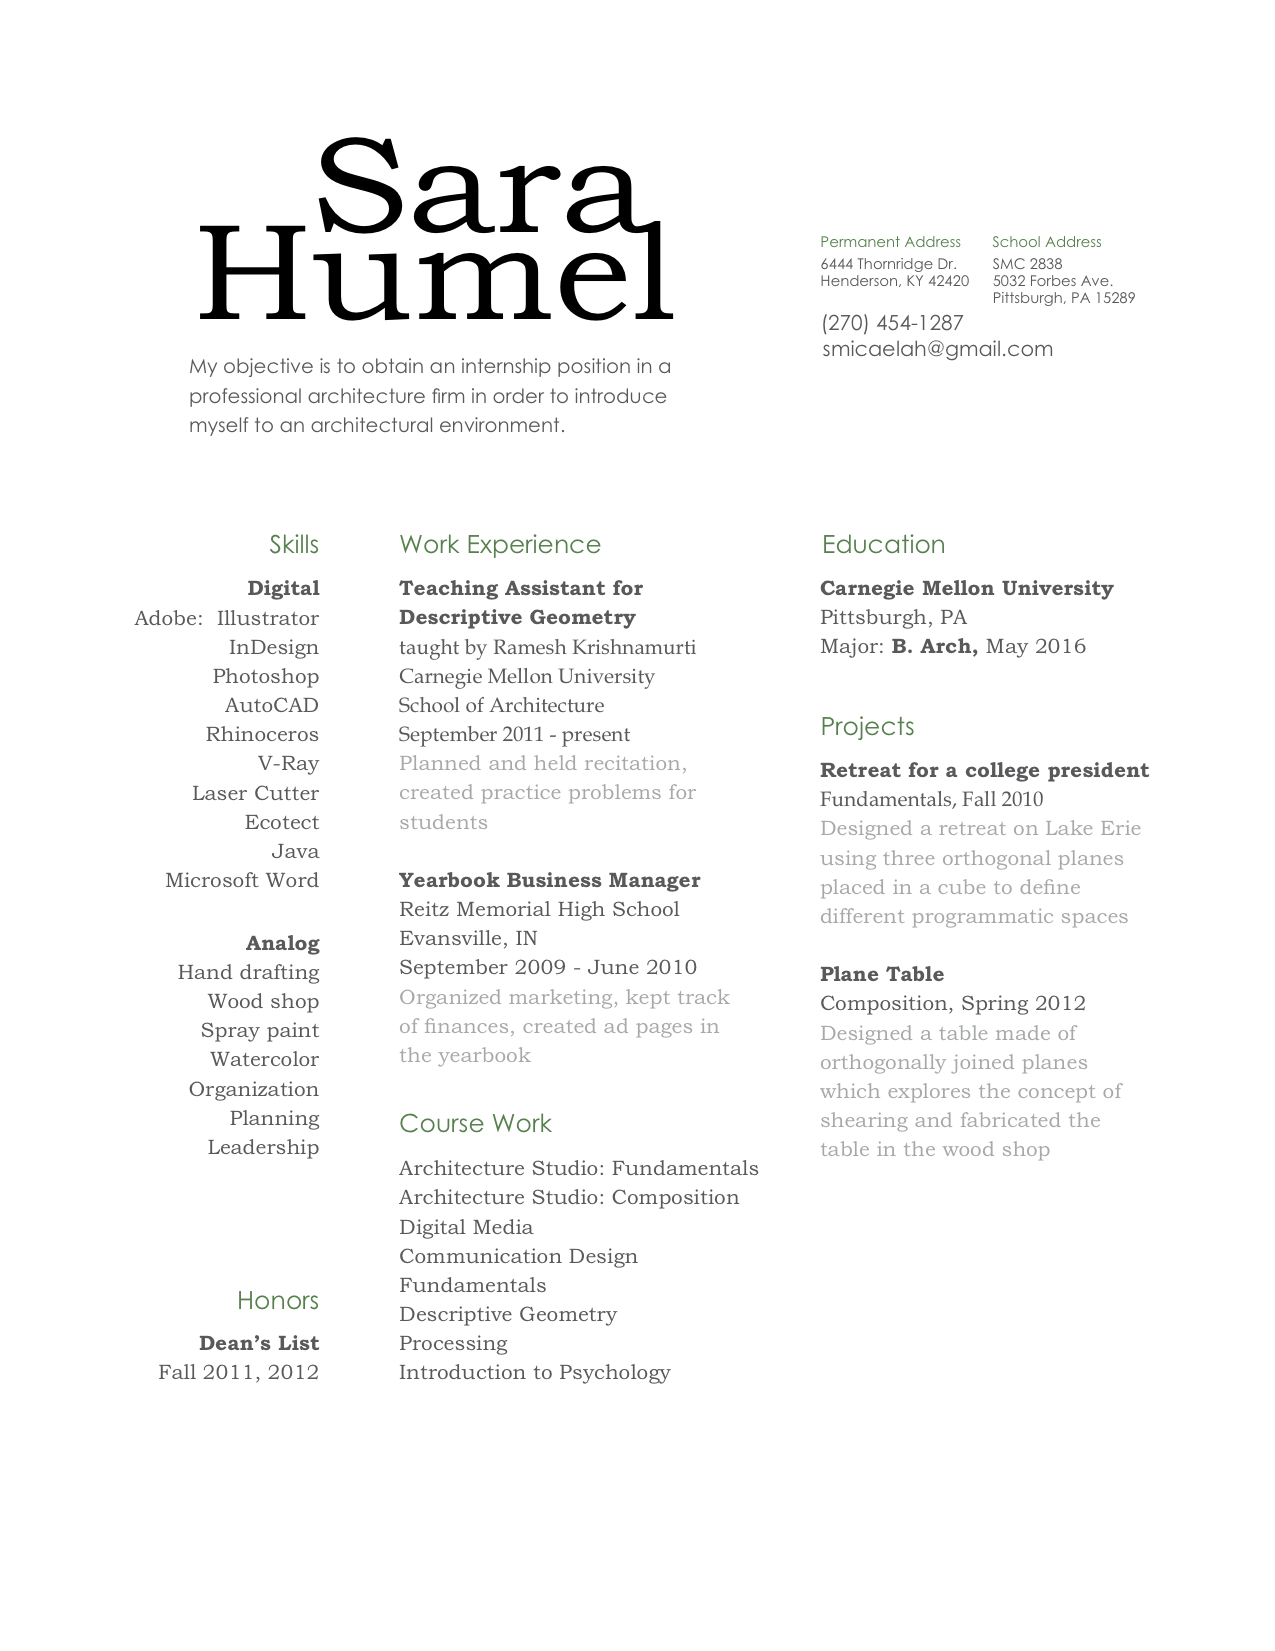 What To Write Under Communication On A Resume Sara Humel It Is Just The Beginningspring 2012